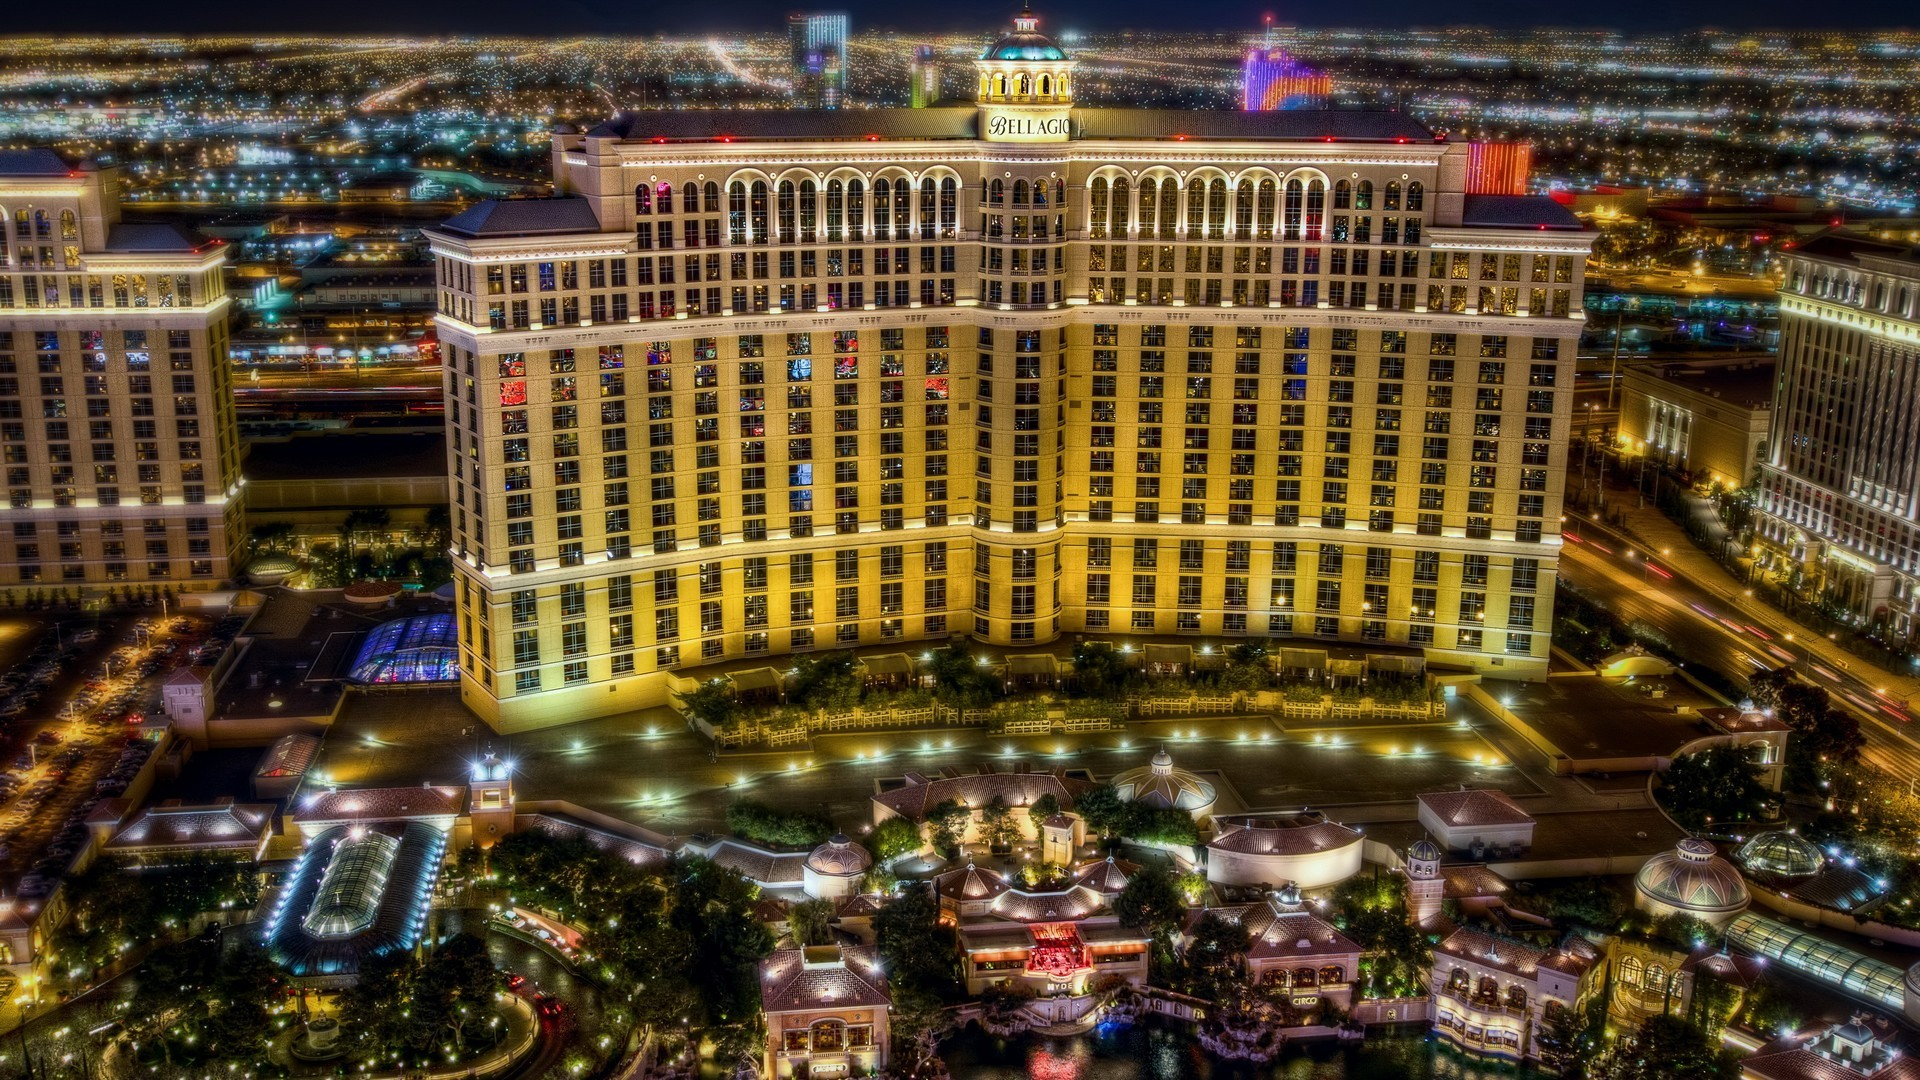 Las vegas hdr hd world 4k wallpapers images backgrounds photos and pictures - Las vegas wallpaper 4k ...